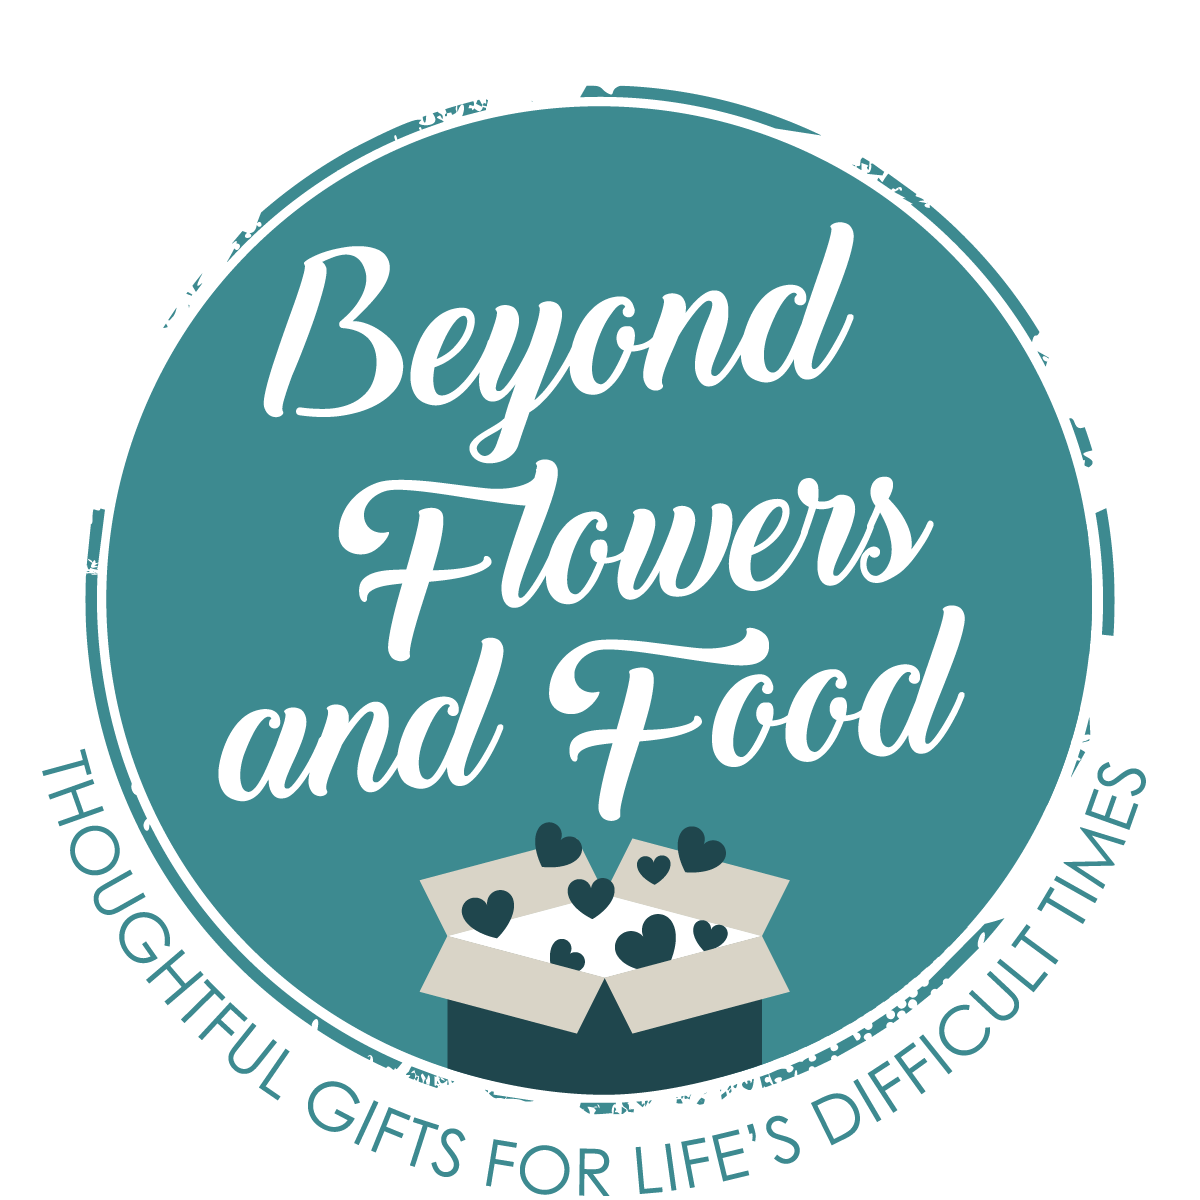 Beyond Flowers and Food | Thoughtful gifts for life's difficult times